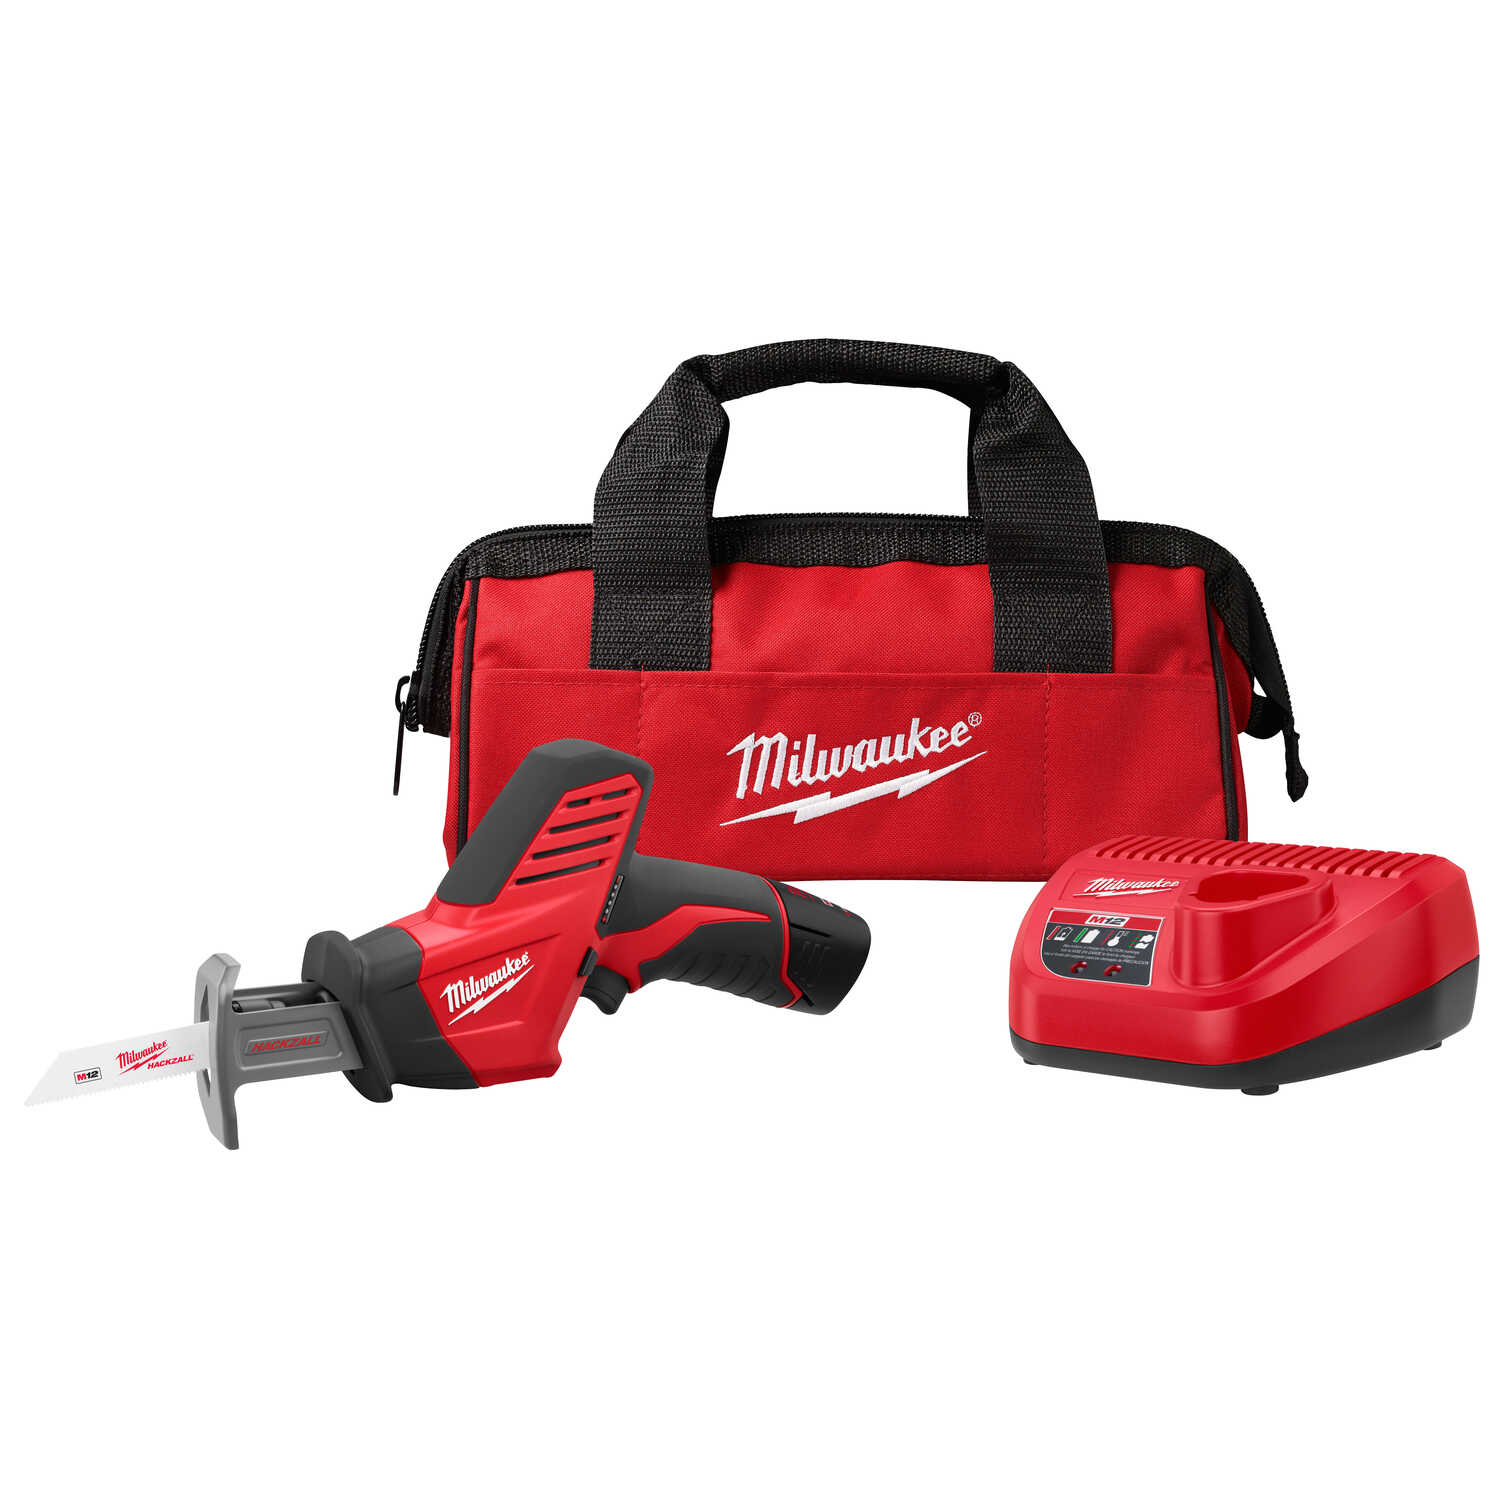 Milwaukee  M12 HACKZALL  1/2 in. Cordless  Reciprocating Saw  Kit 12 volt 3000 spm